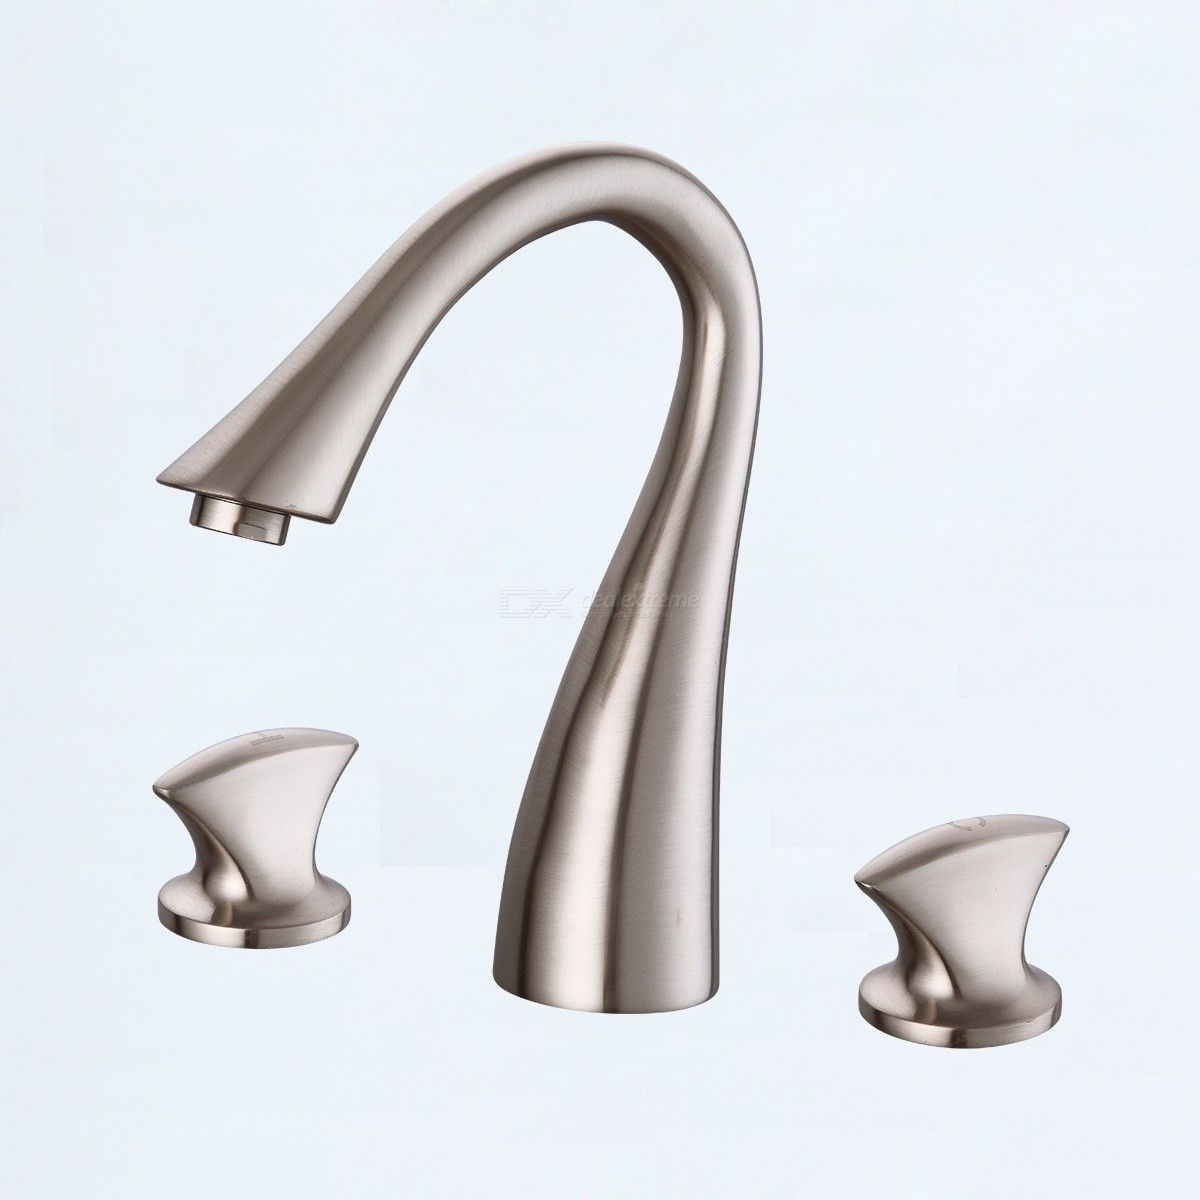 Special Price Bathroom Sink Faucet - Widespread Nickel Brushed Widespread Two Handles Three Holes Bath Taps / Brass